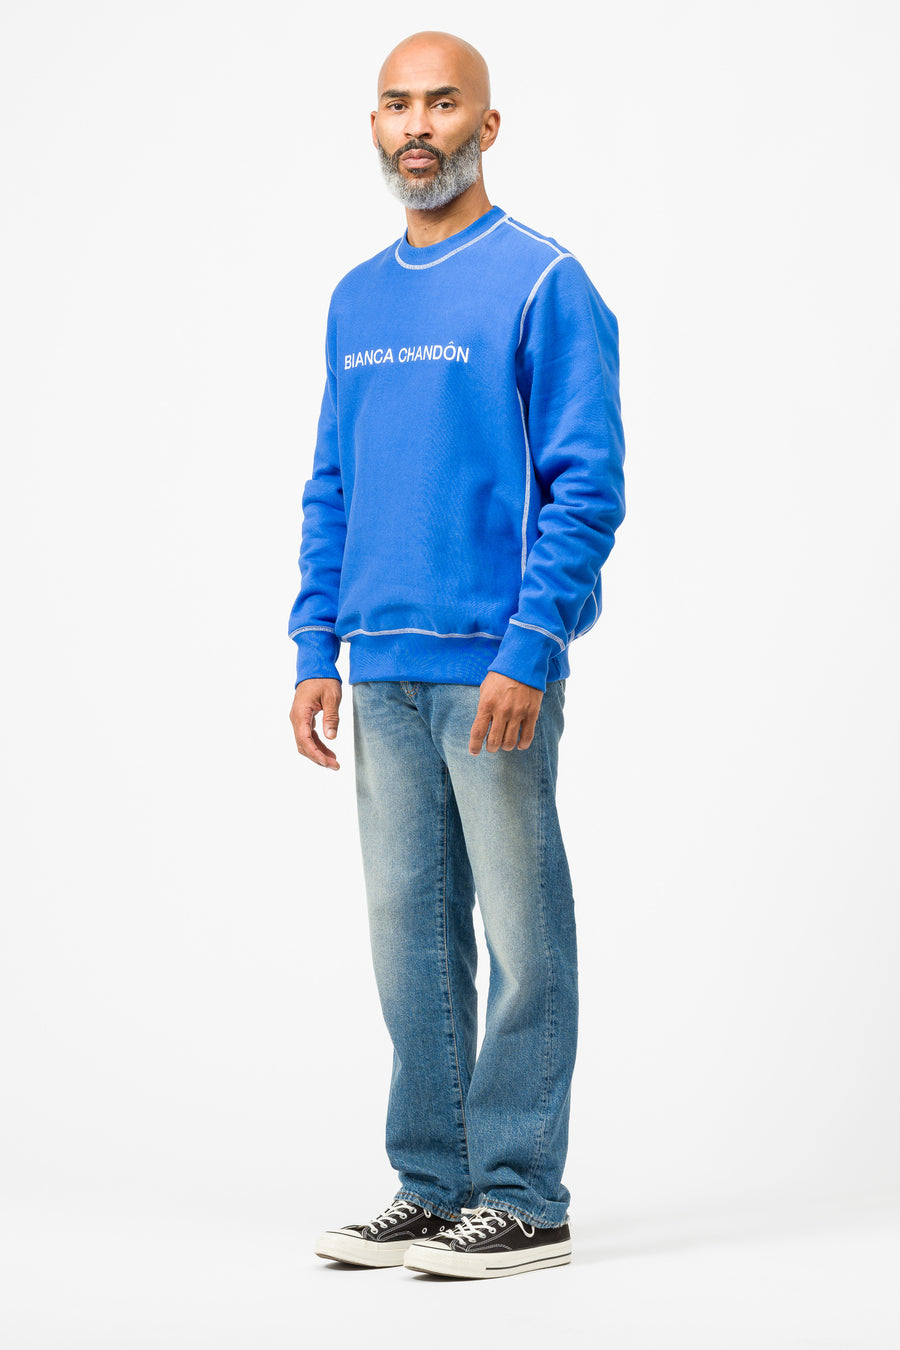 Bianca Chandon Contrast Stitch Logo Crewneck Sweatshirt in Blue - Notre